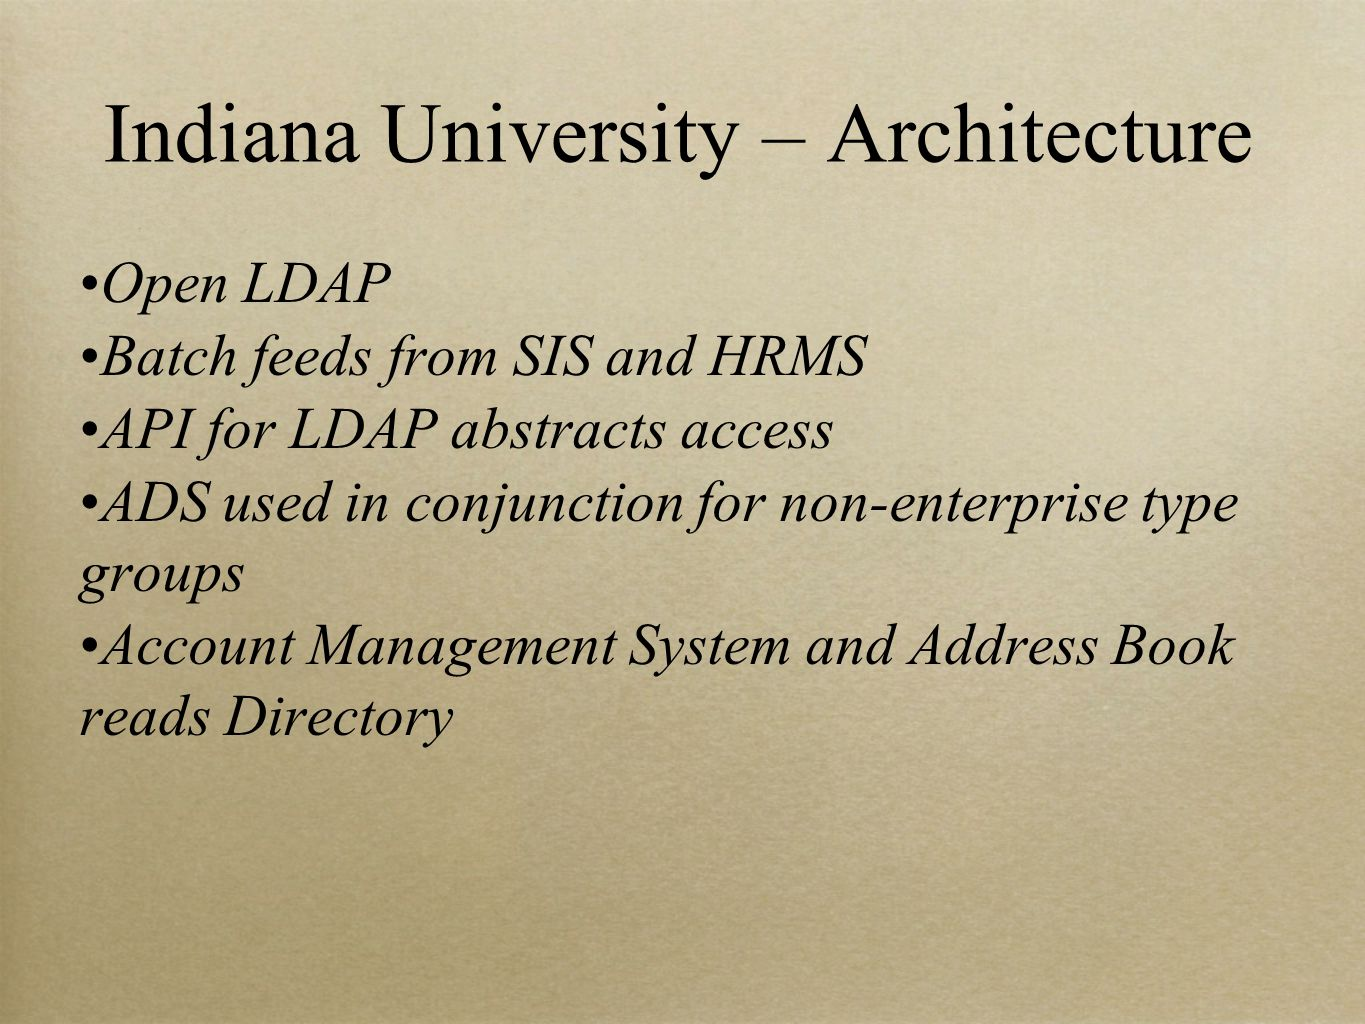 Indiana University – Architecture Open LDAP Batch feeds from SIS and HRMS API for LDAP abstracts access ADS used in conjunction for non-enterprise type groups Account Management System and Address Book reads Directory